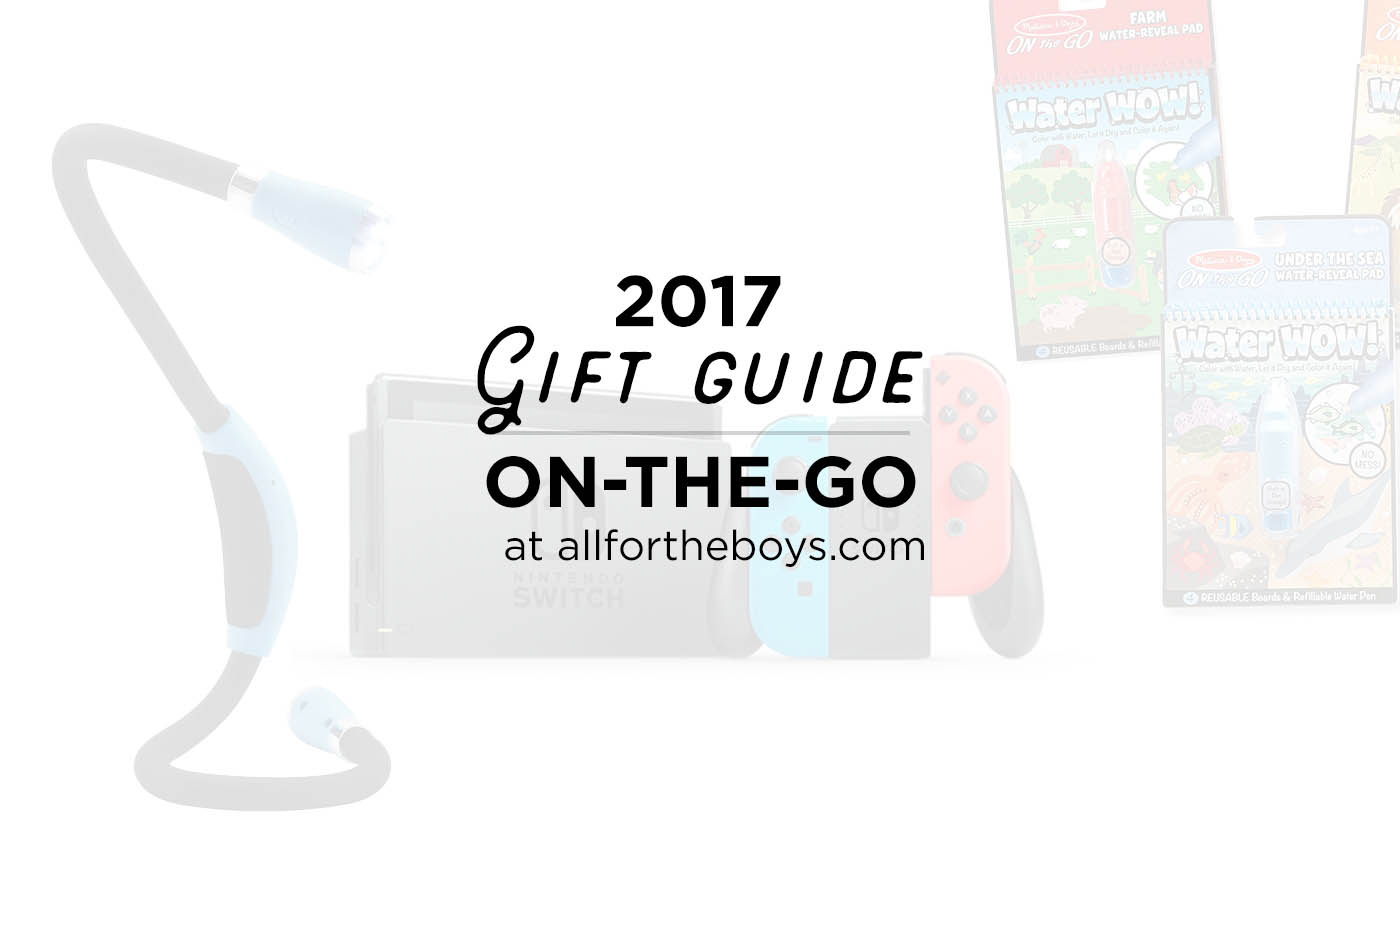 2017 last minute gift guide for kids who are on-the-go whether they love travel or not